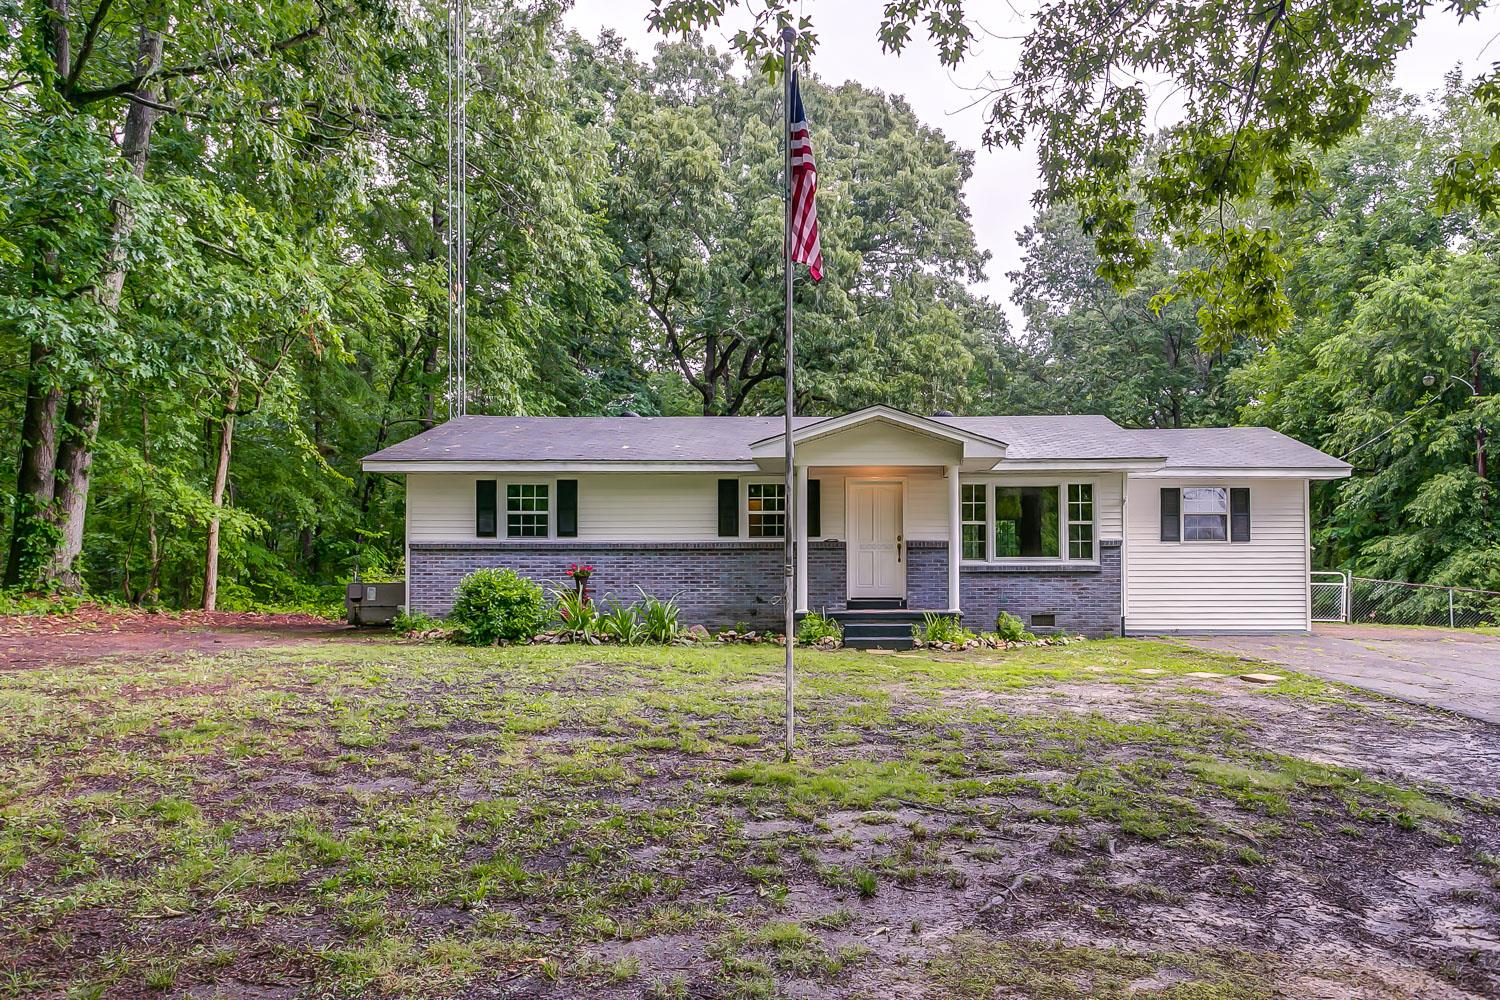 816 Post Oak Rd, Camden, TN 38320 - Camden, TN real estate listing